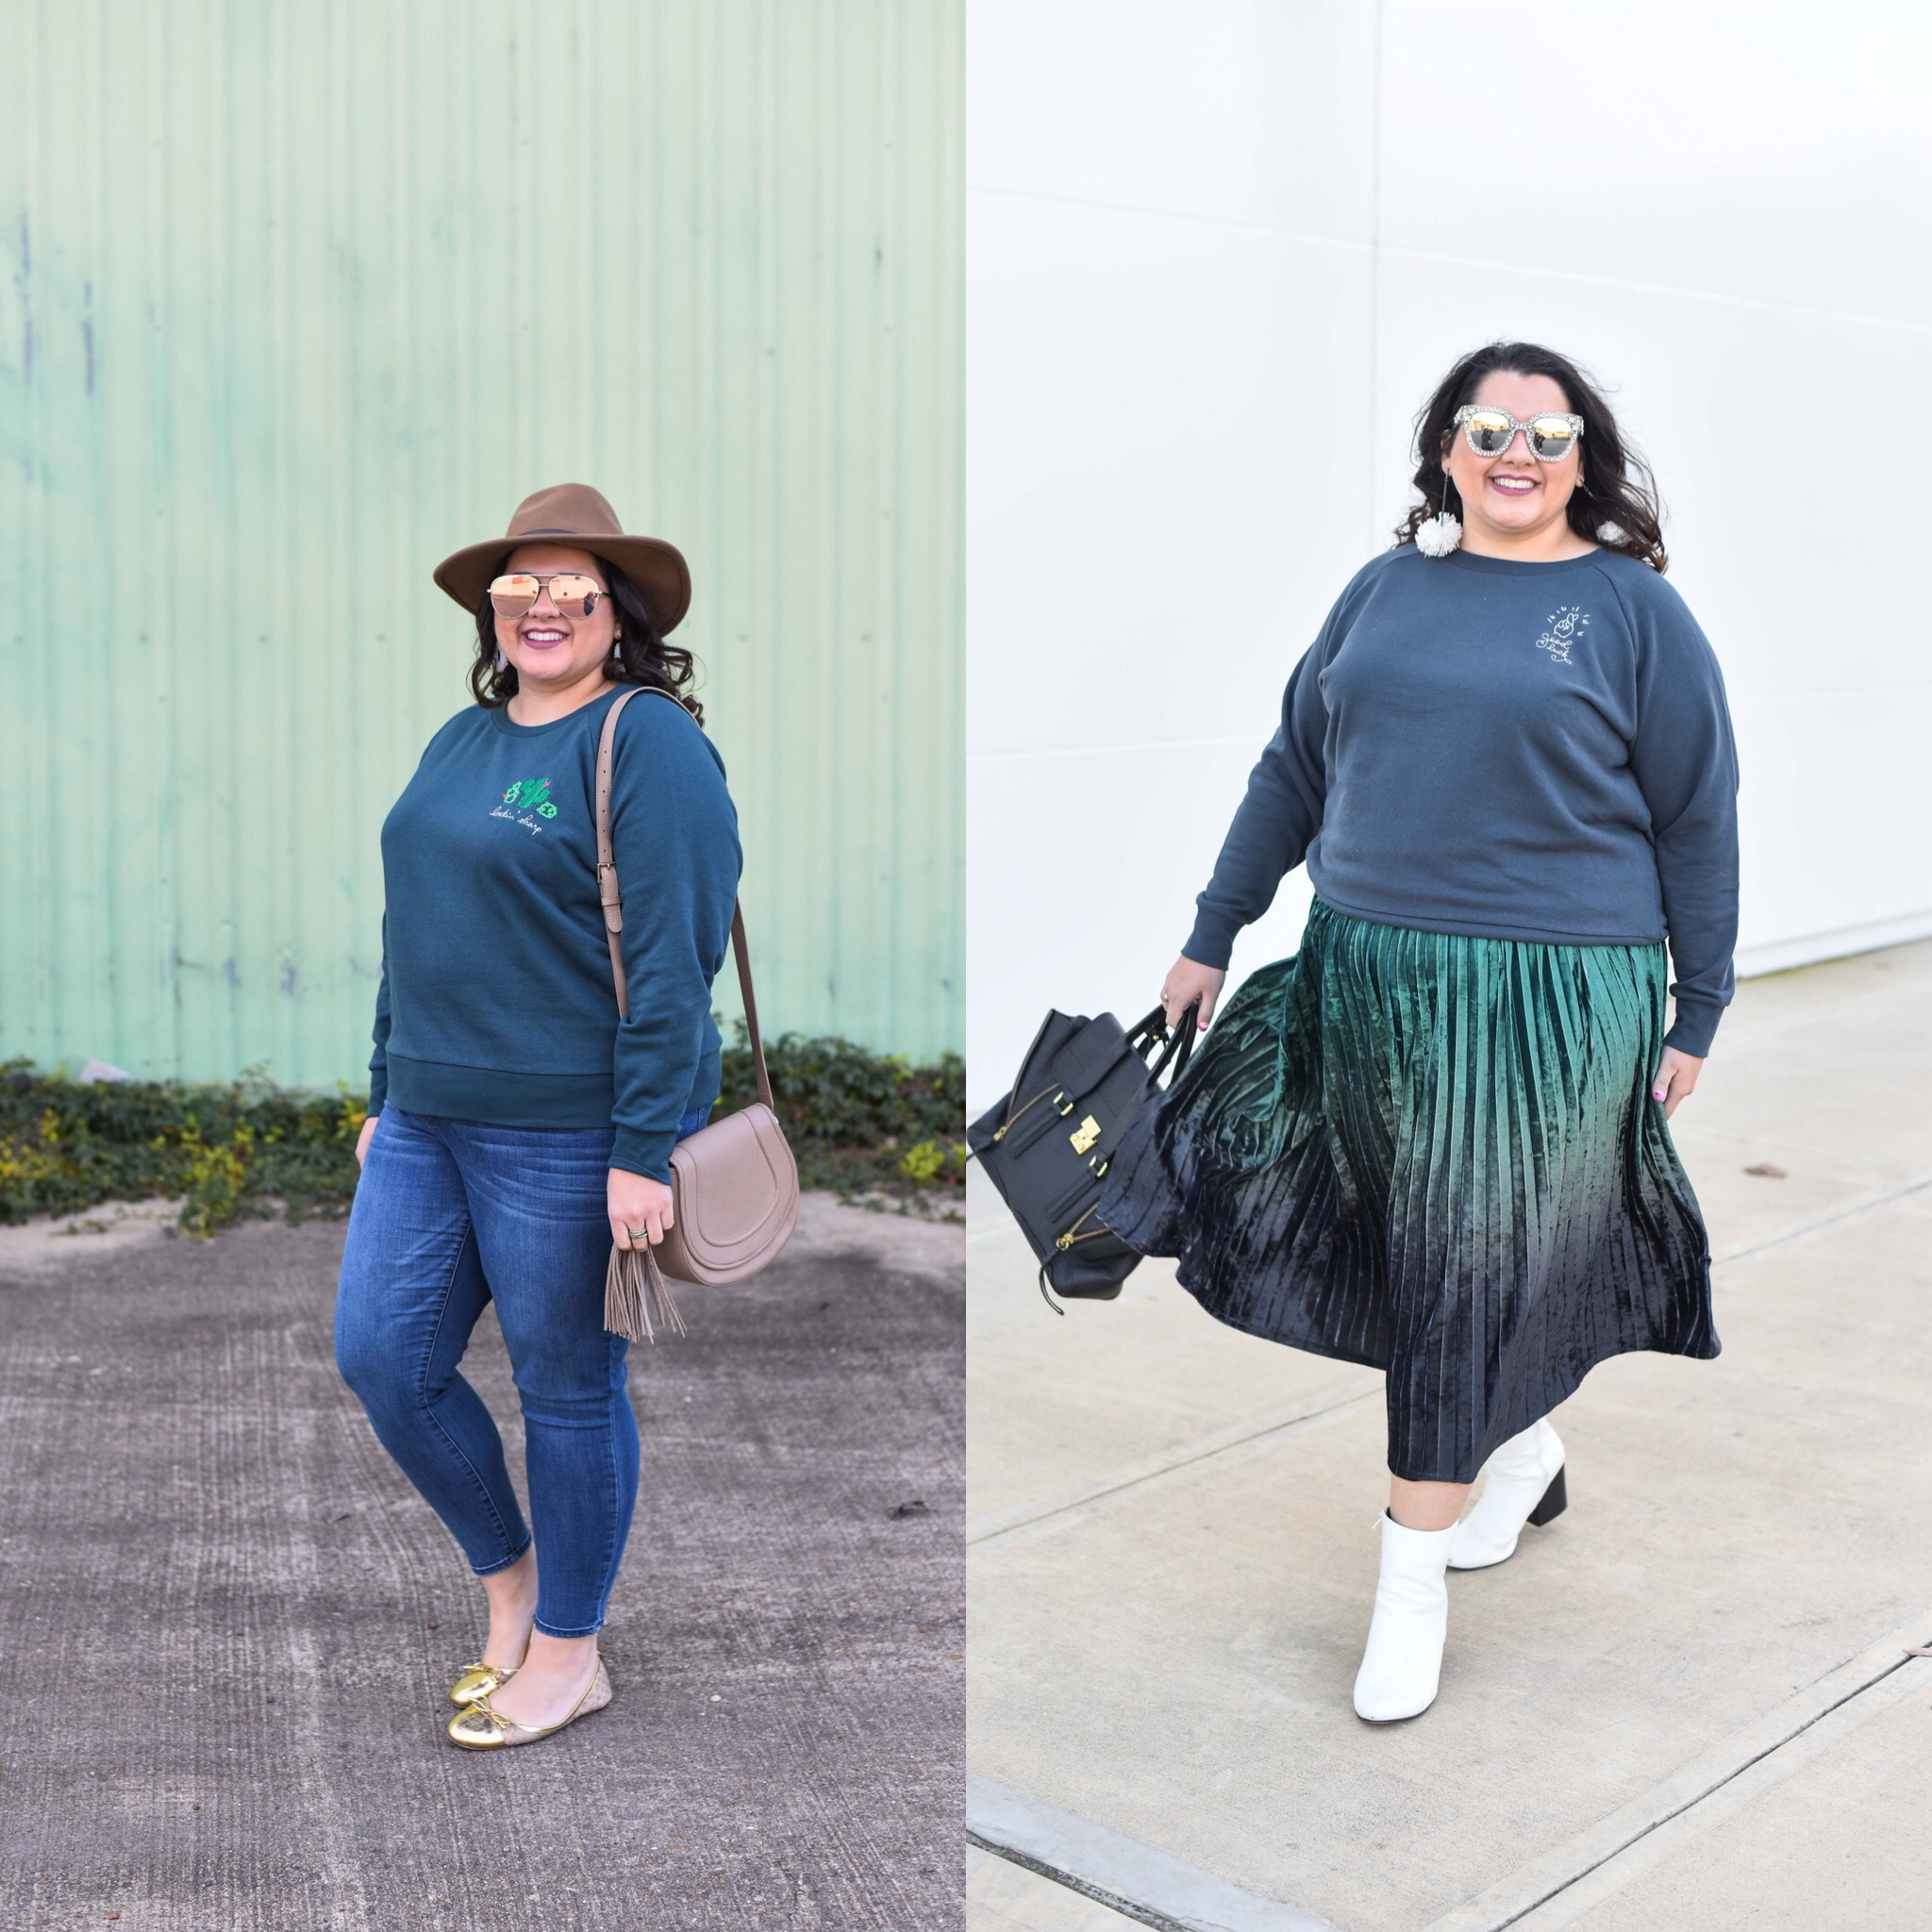 Talking about the biggest lesson I learned from Marie Kondo and how I'm trying to be more creative in styling items for more than one occasion - starting with the Ori embroidered sweatshirt. #plussizestyle